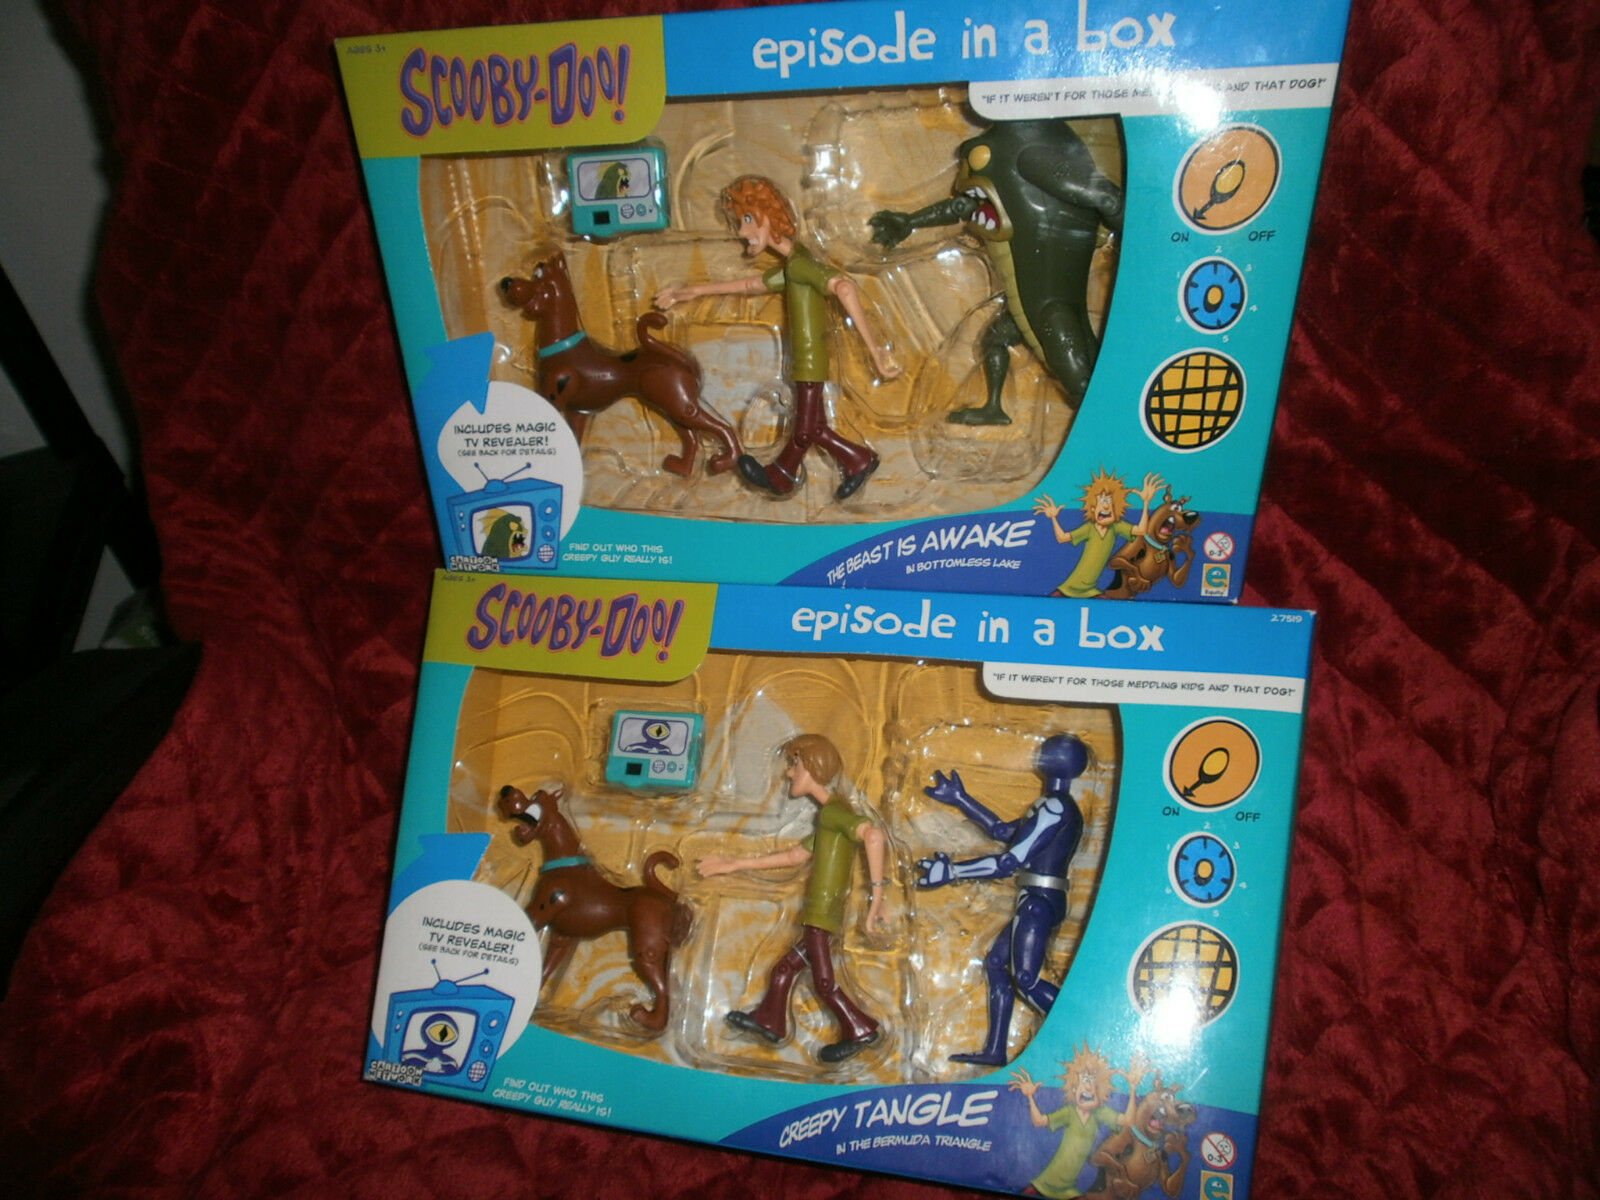 SCOOBY DOO EPISODE IN A BOX CREEPY TANGLE + THE BEAST IS AWAKE  SET OF 2